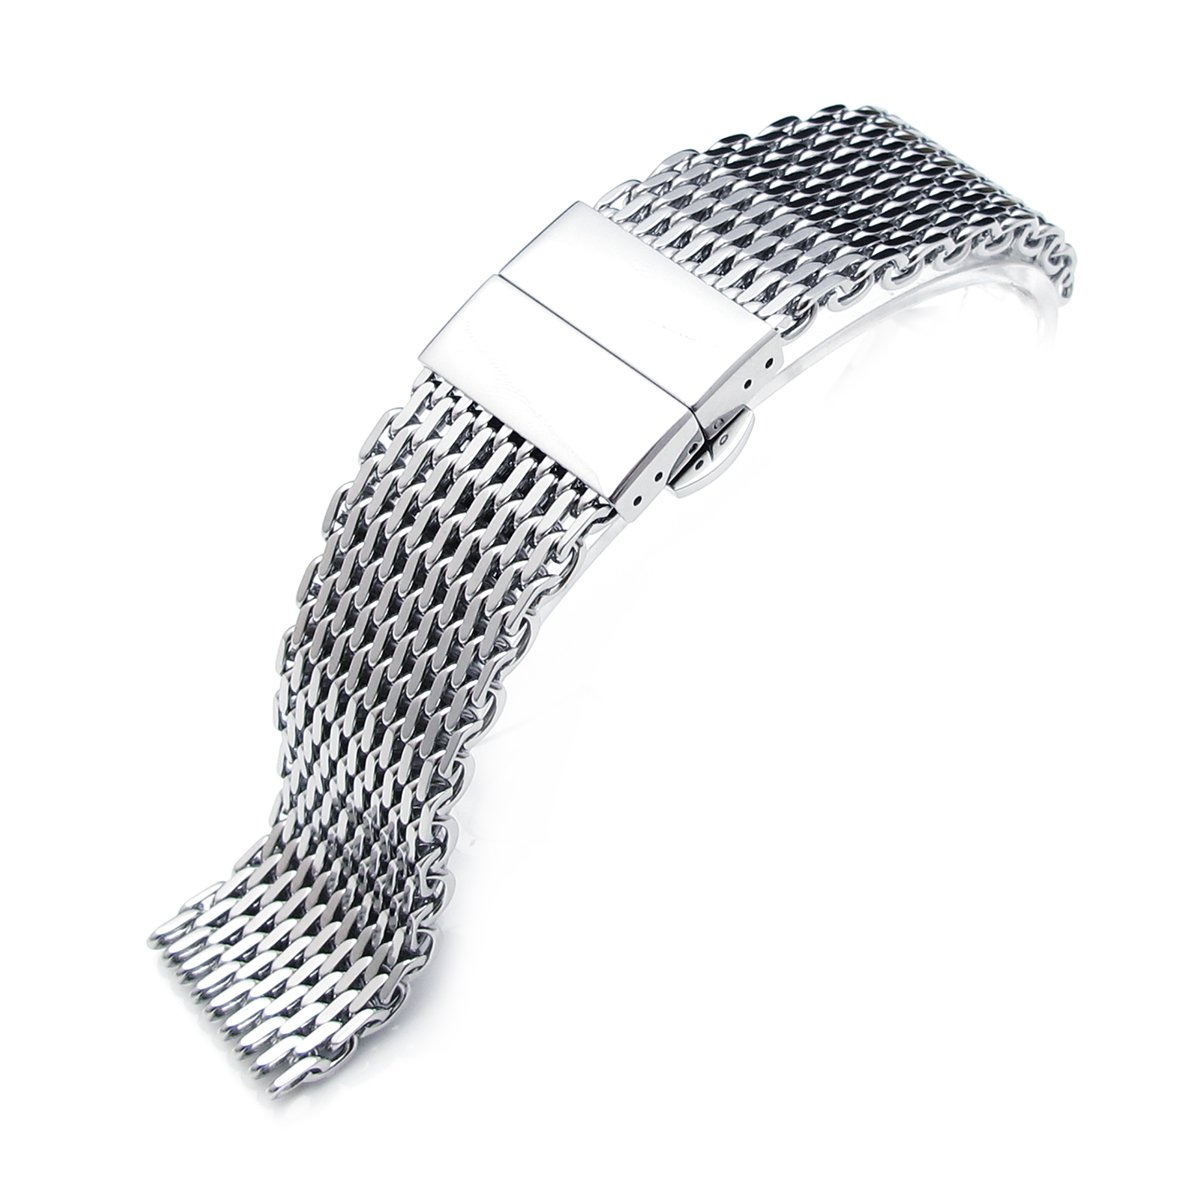 20mm Ploprof 316 Reform Stainless Steel ''SHARK'' Mesh Watch Band Deployant Strap, Polished (AZ) by 20mm Mesh Band